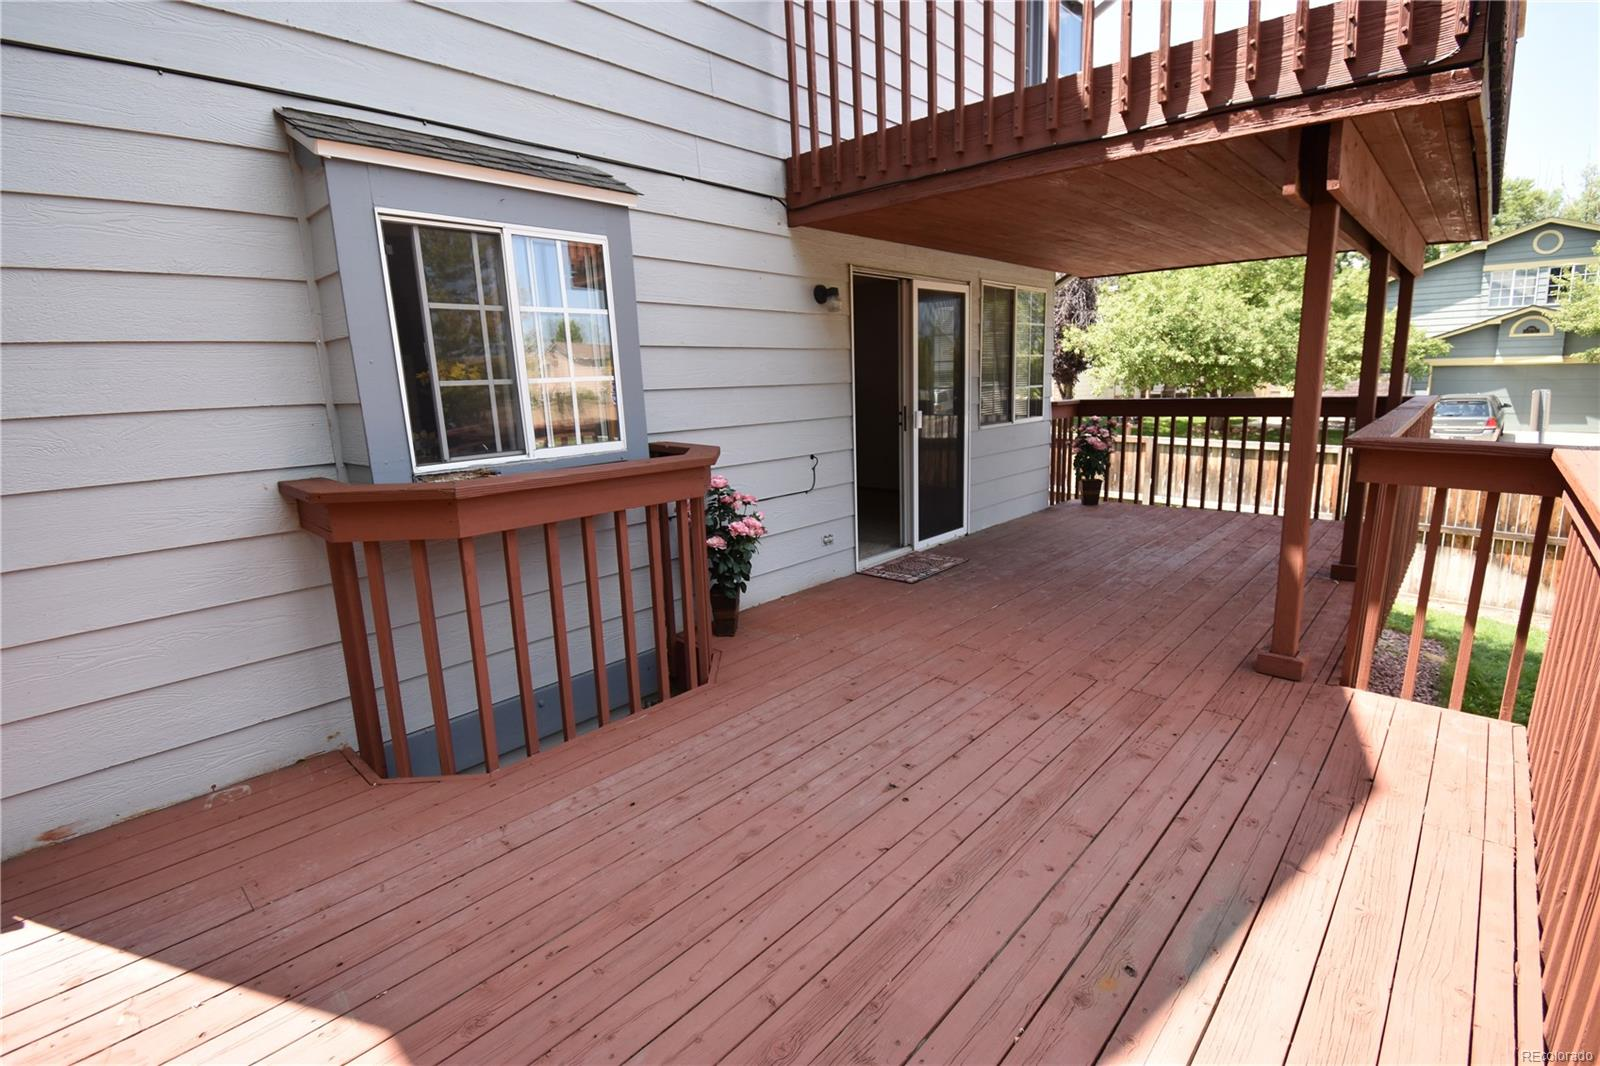 Nice decks perfect for entertaining